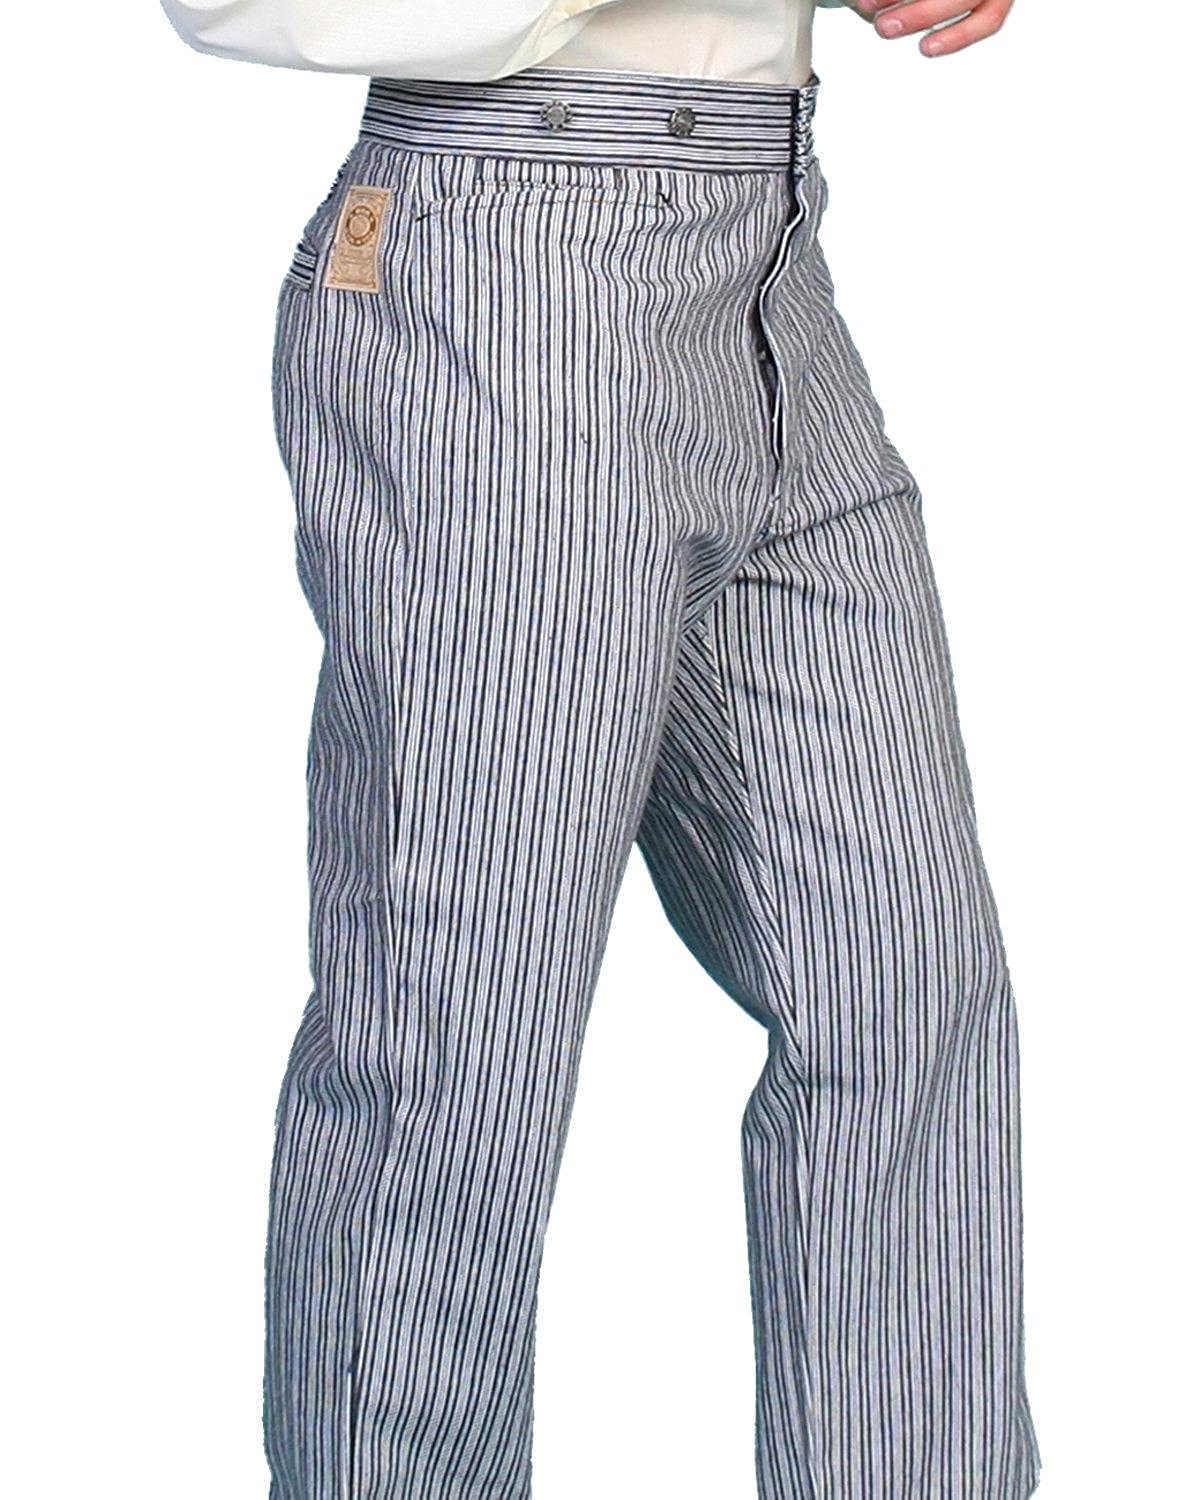 1920s Men's Pants, Trousers, Plus Fours, Knickers Scully Wahmaker Mens Wahmaker Railhead Stripe Pants $99.99 AT vintagedancer.com